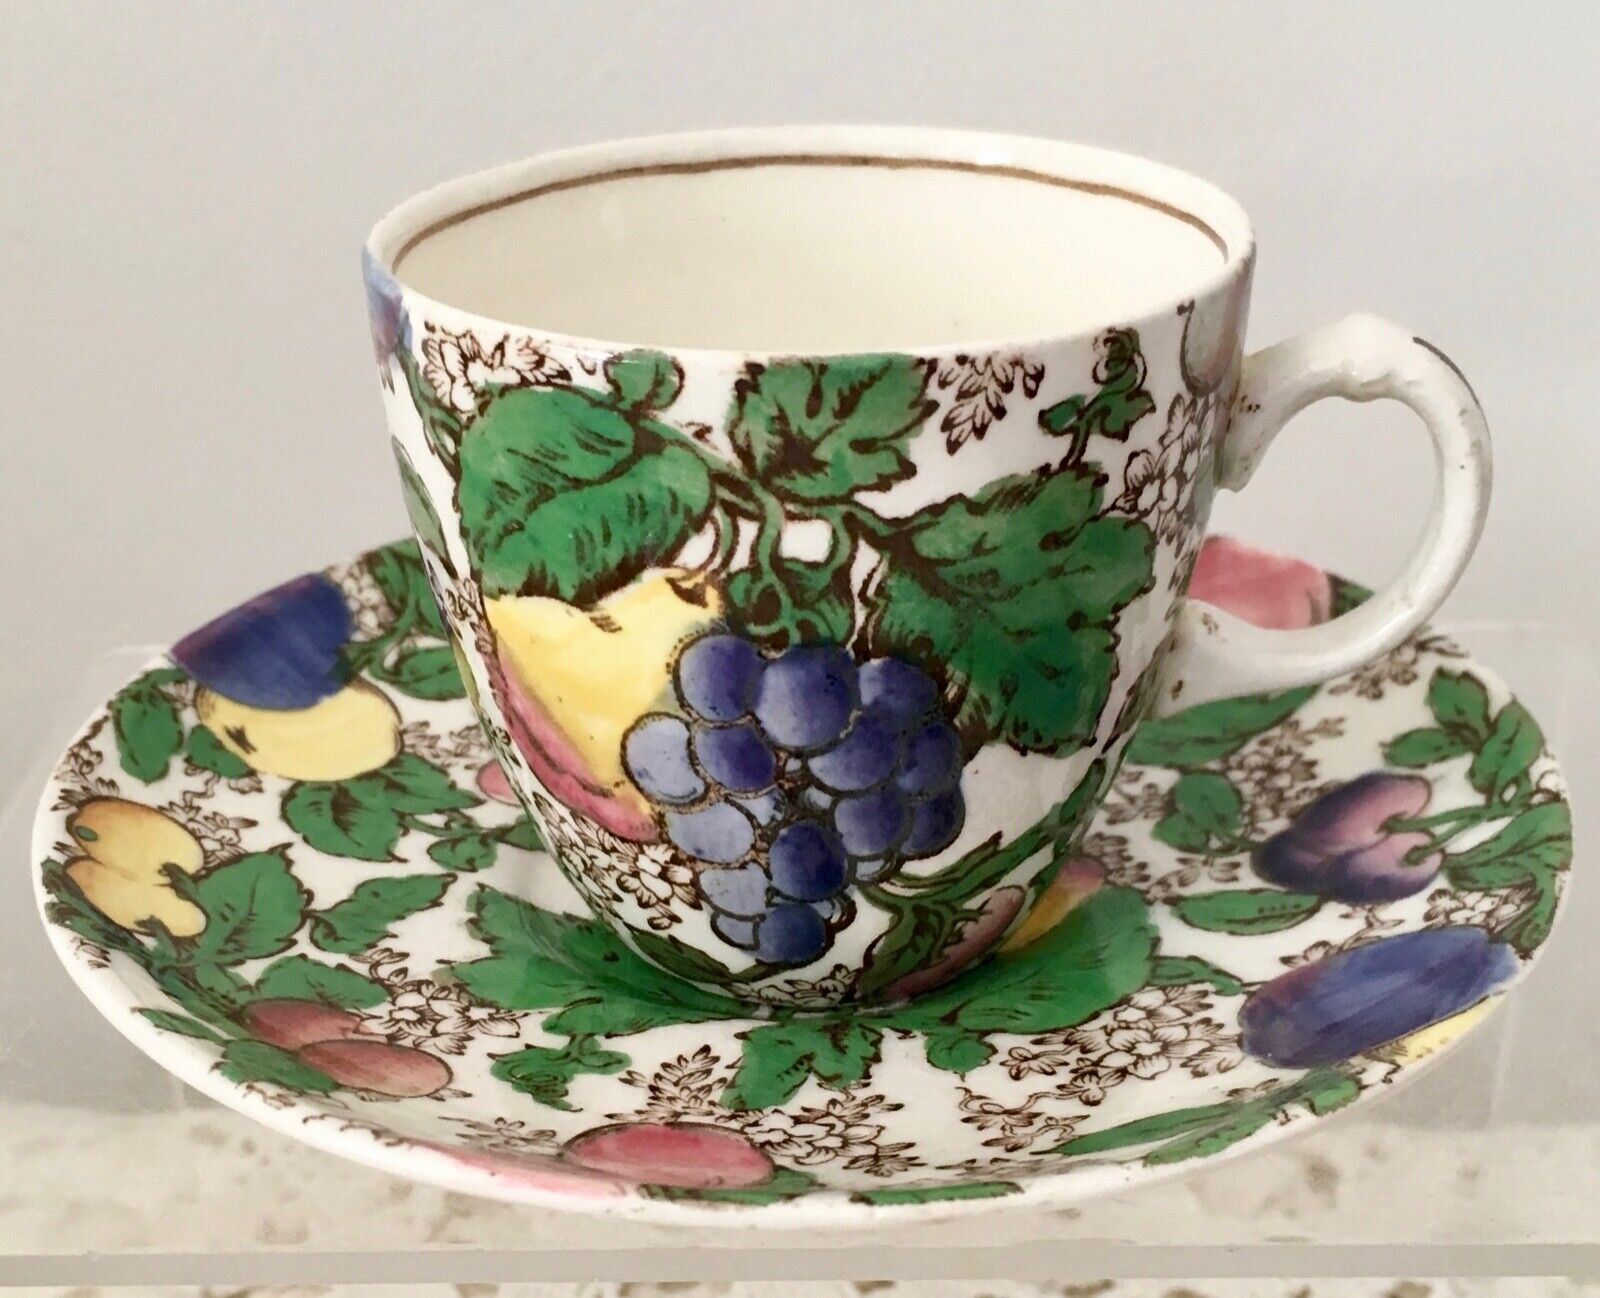 BOOTHS ENGLAND SILICON CHINA 'EVESHAM' PATTERN DEMITASSE CUP & SAUCER FRUIT